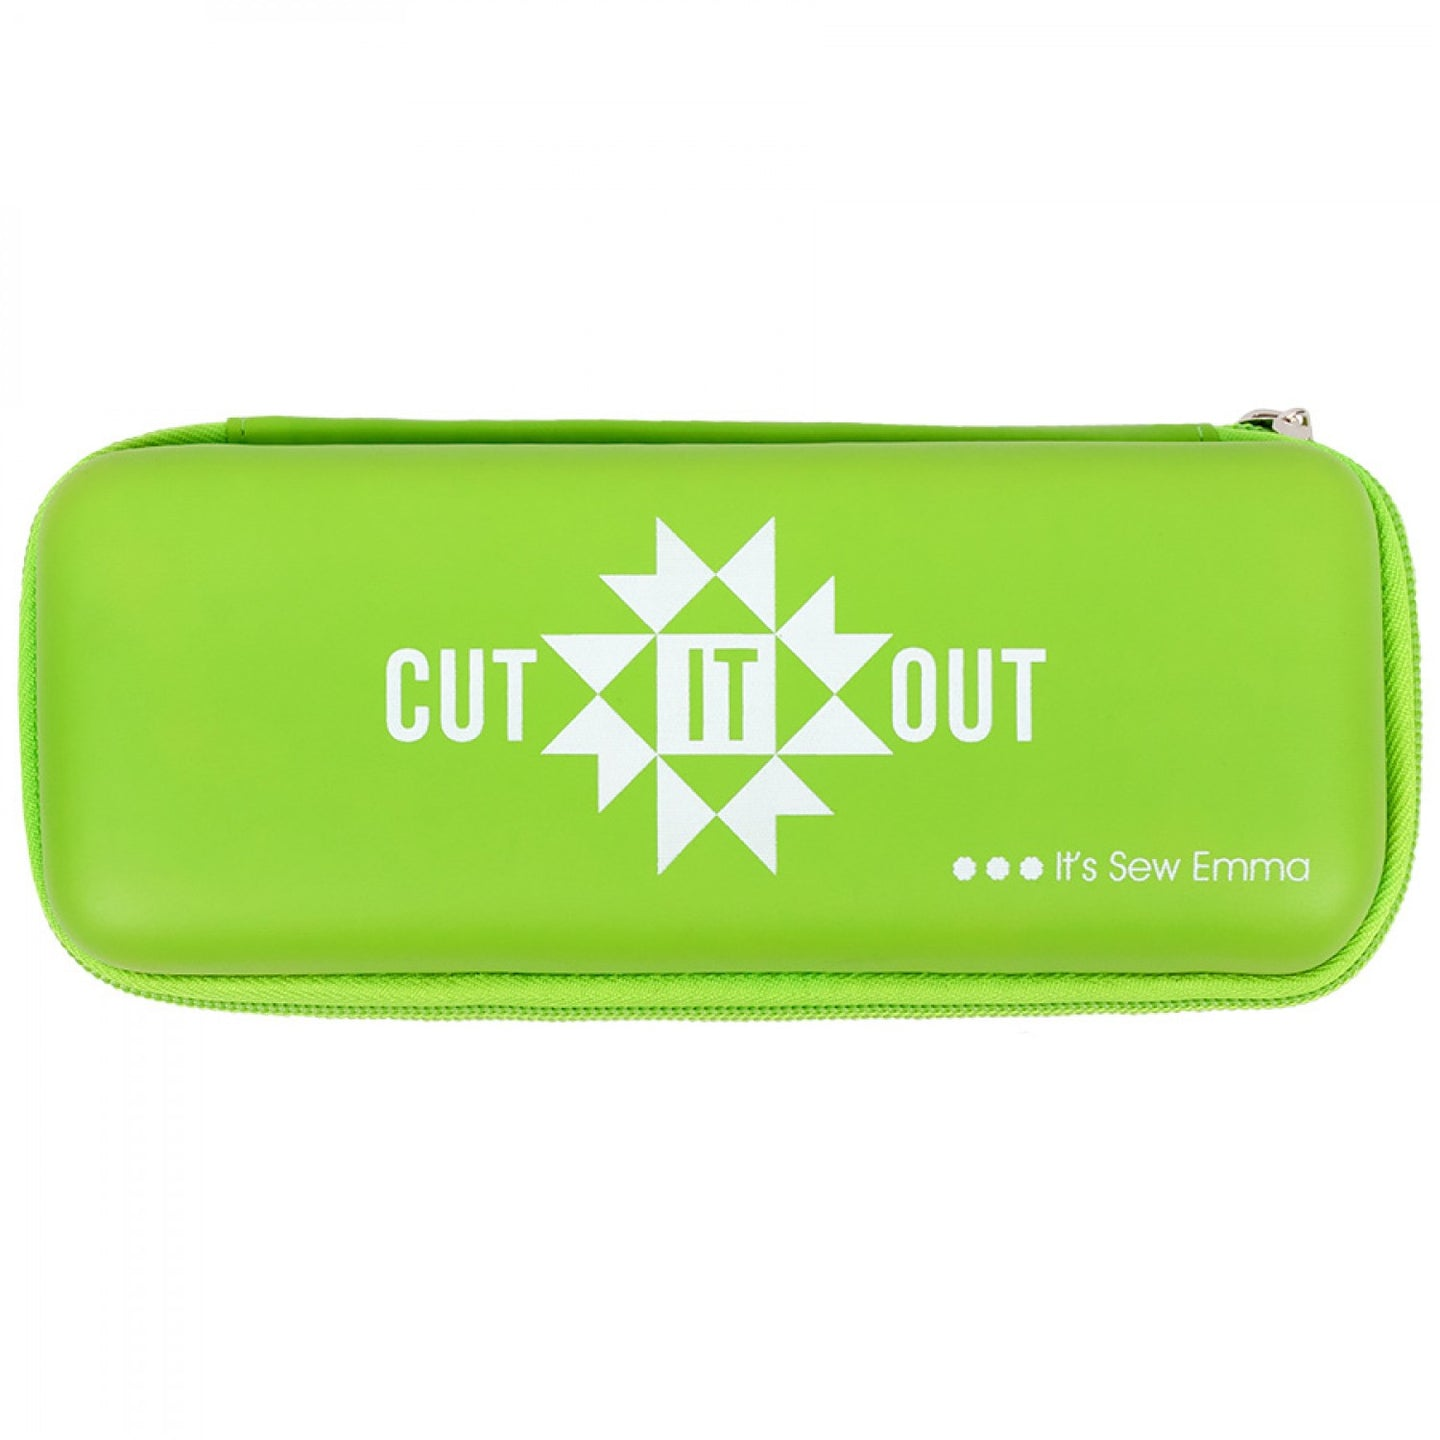 Rotary Cutter Case - Cut It Out